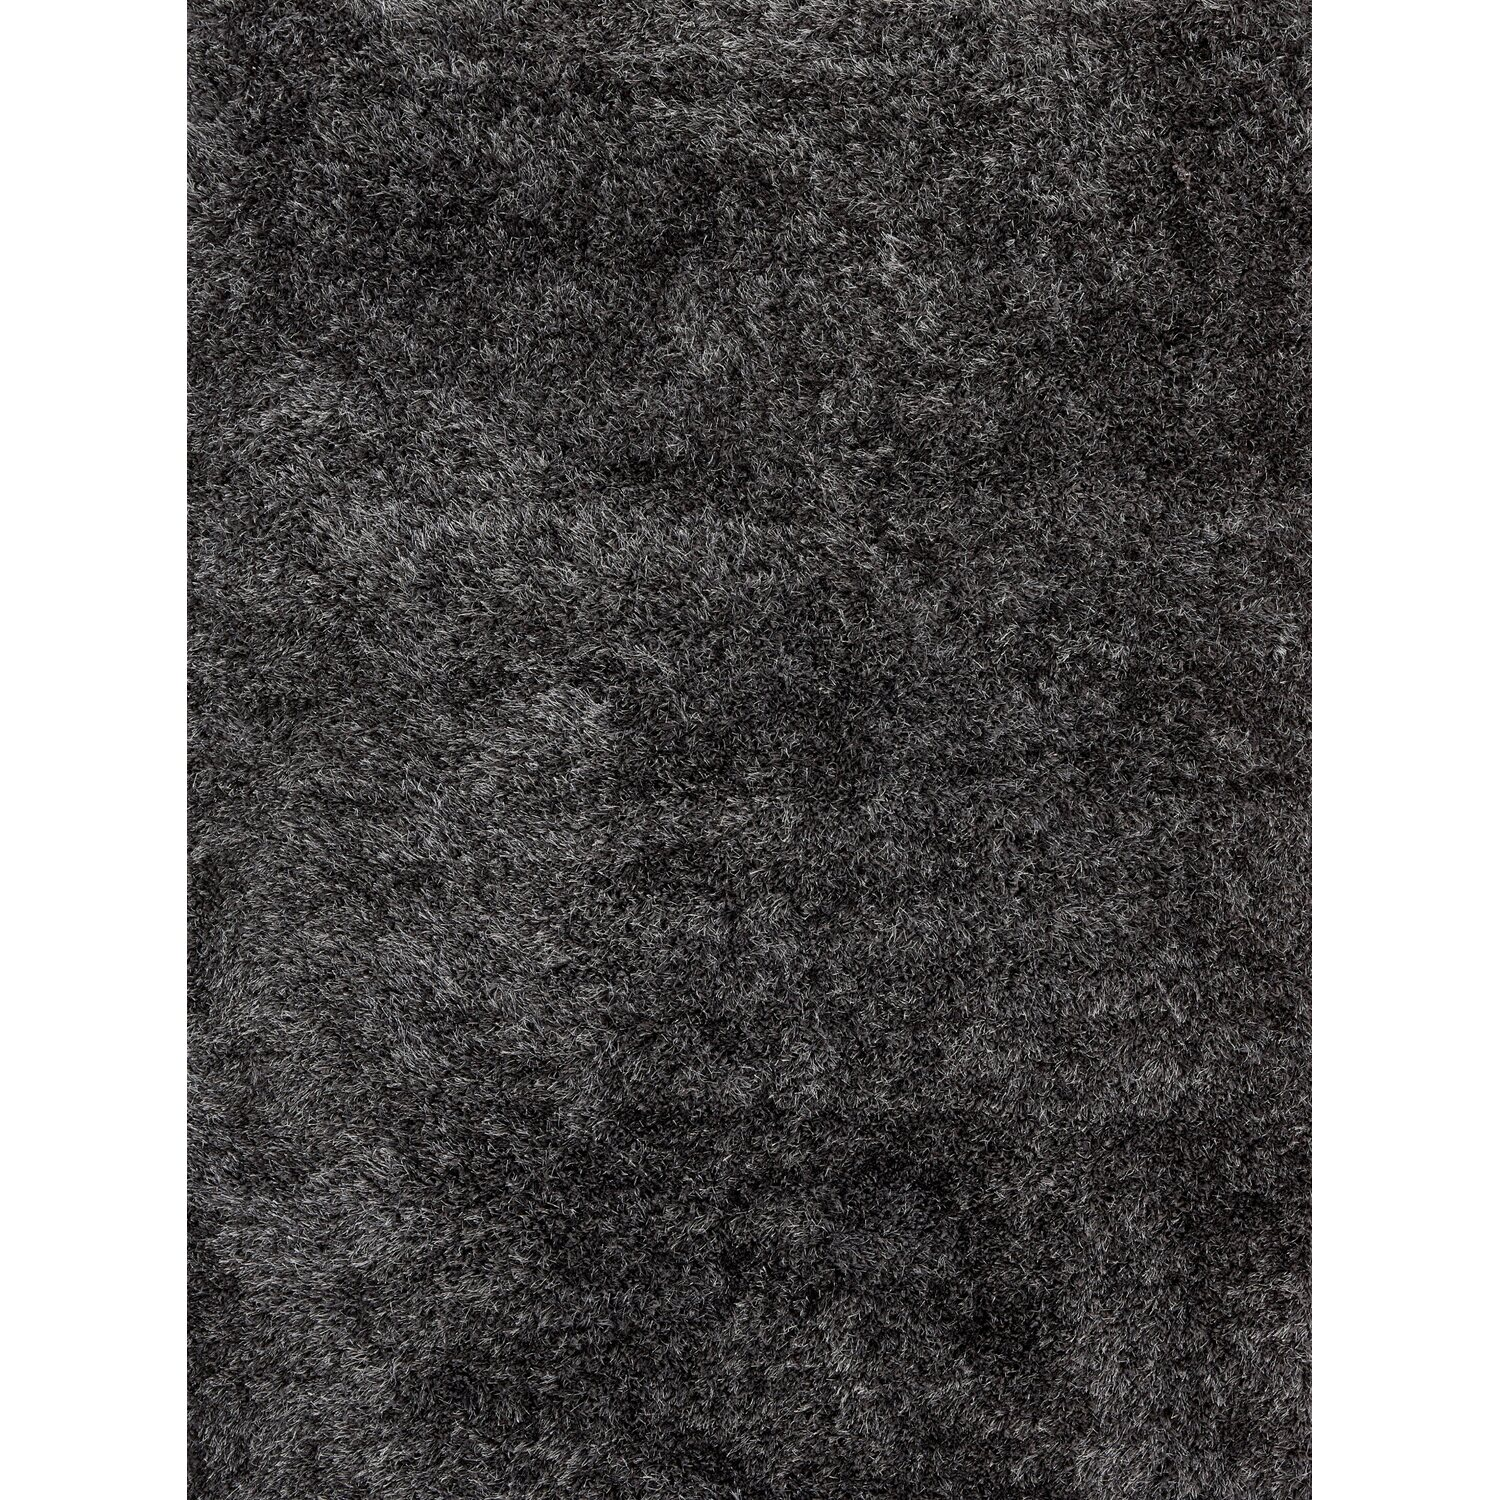 bb home passion Barbara Becker Teppich Emotion 70 cm x 140 cm Grau